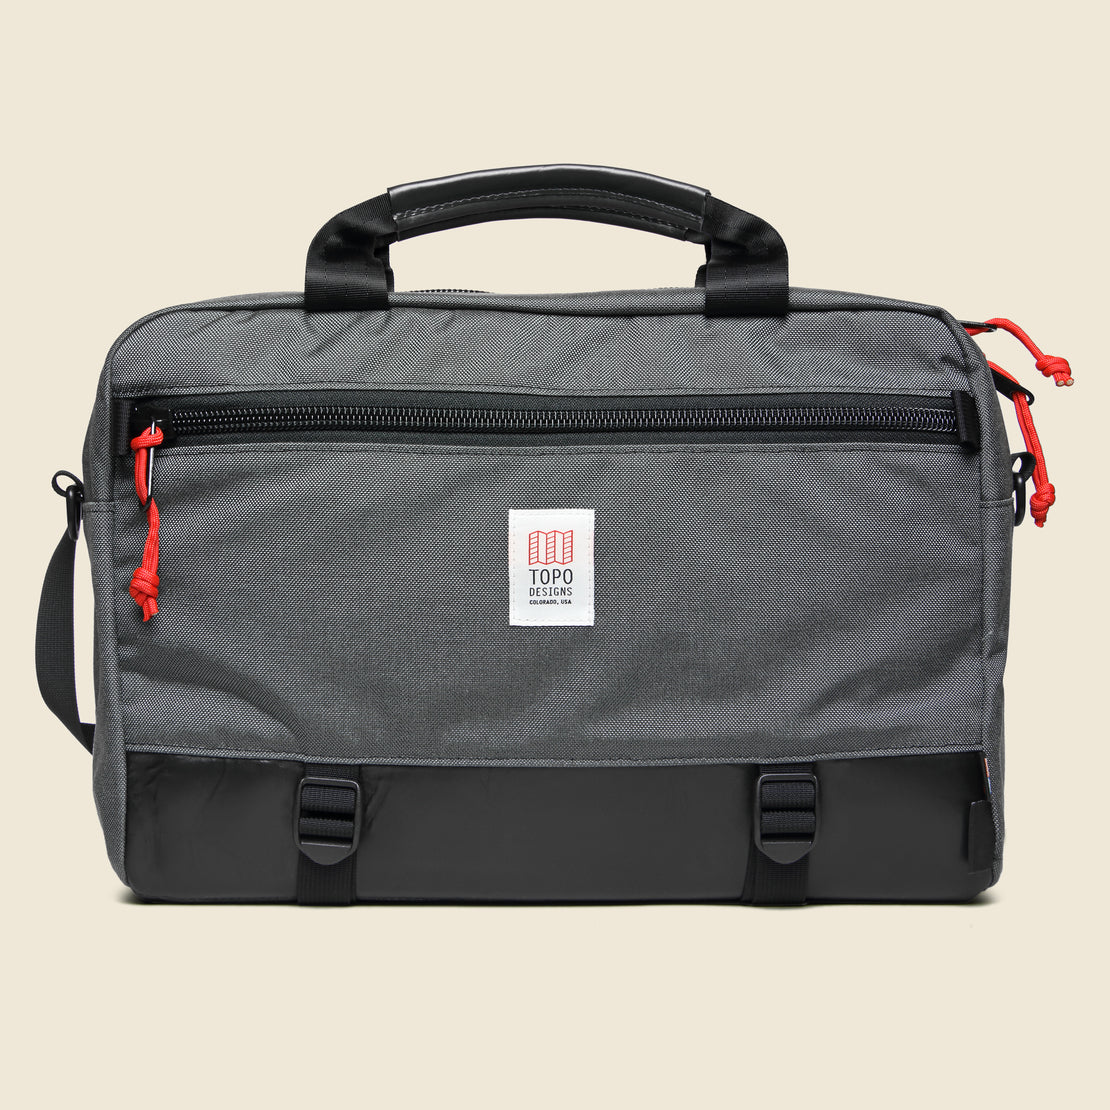 Topo Designs Commuter Briefcase - Charcoal/Black Leather